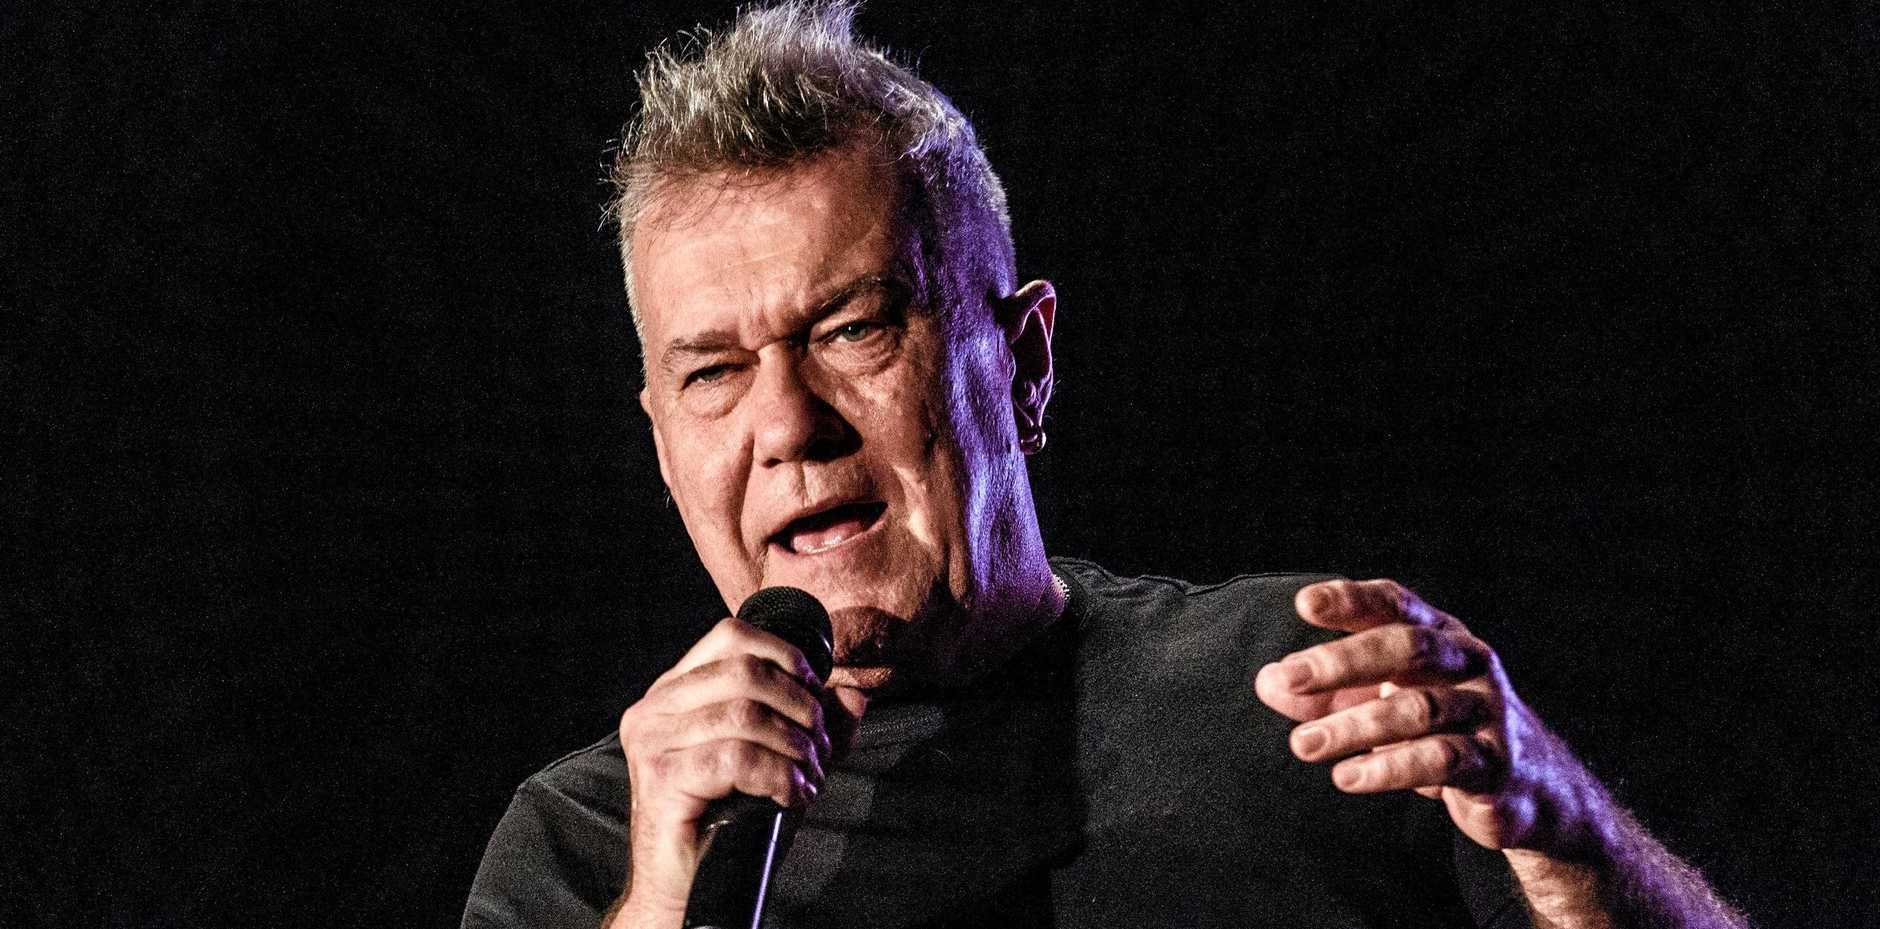 Jimmy Barnes' performs Working Class Man at Saraton Theatre in May.